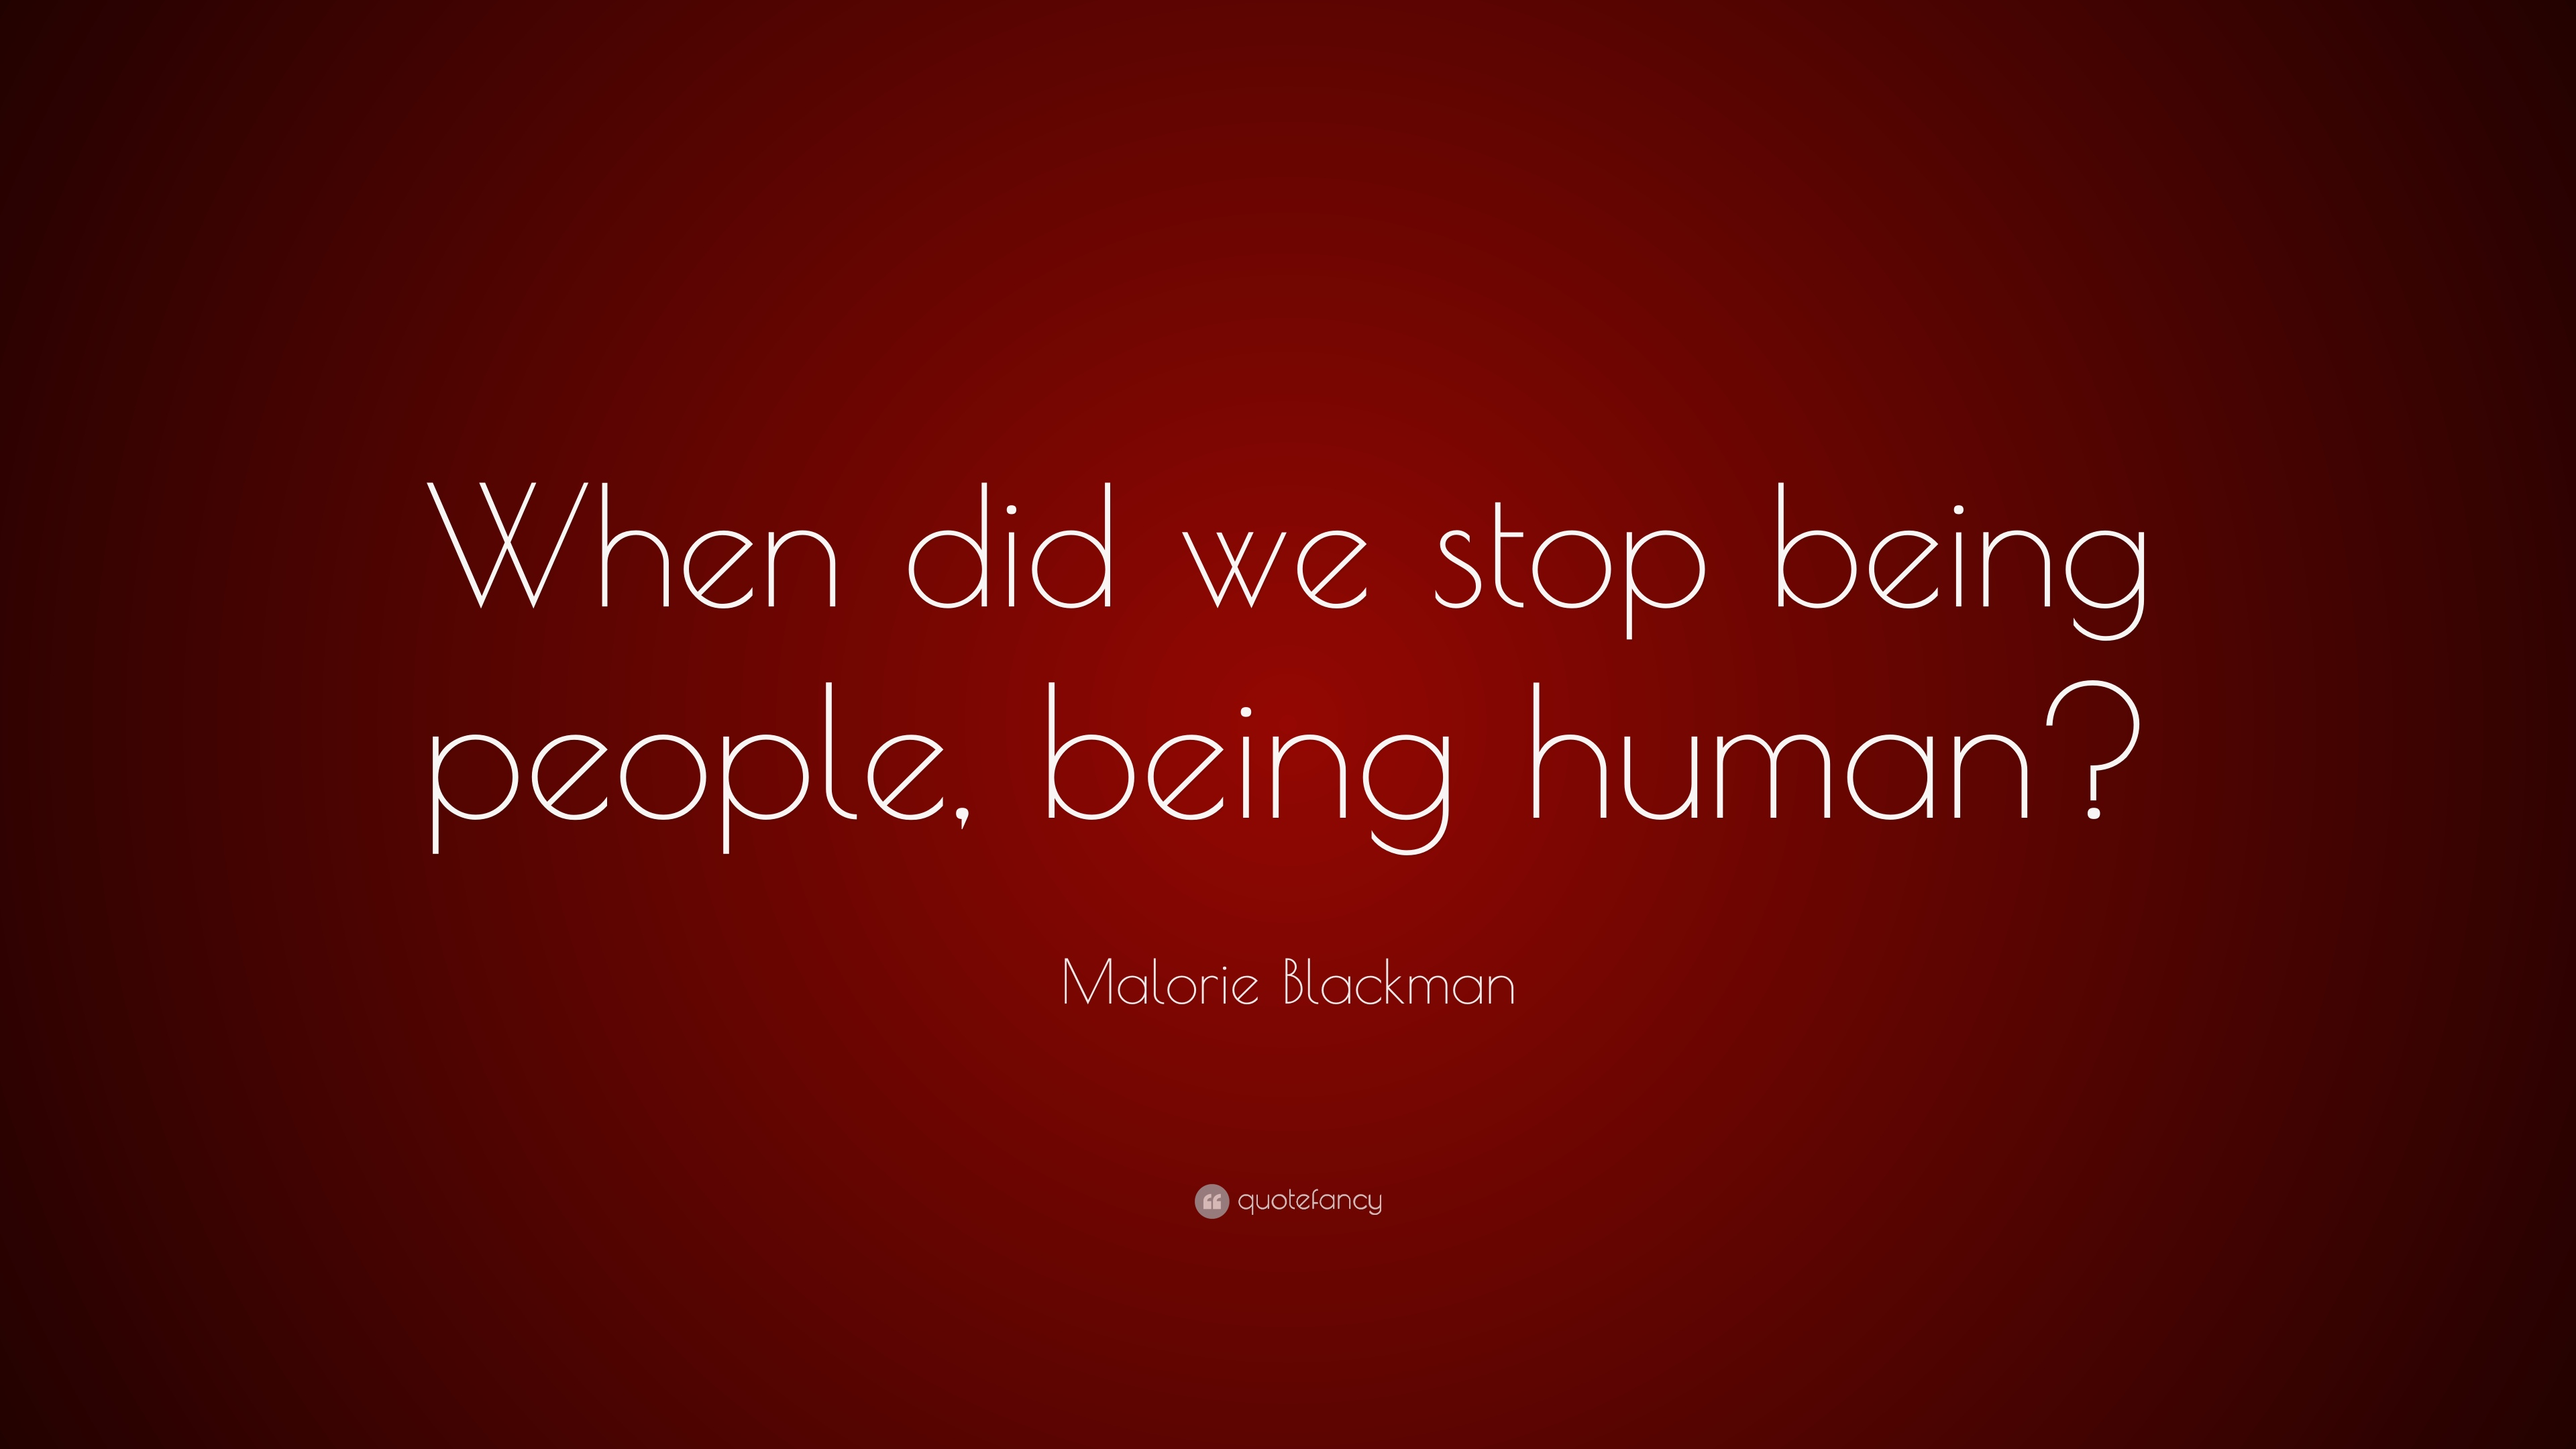 Malorie Blackman Quote When Did We Stop Being People Being Human